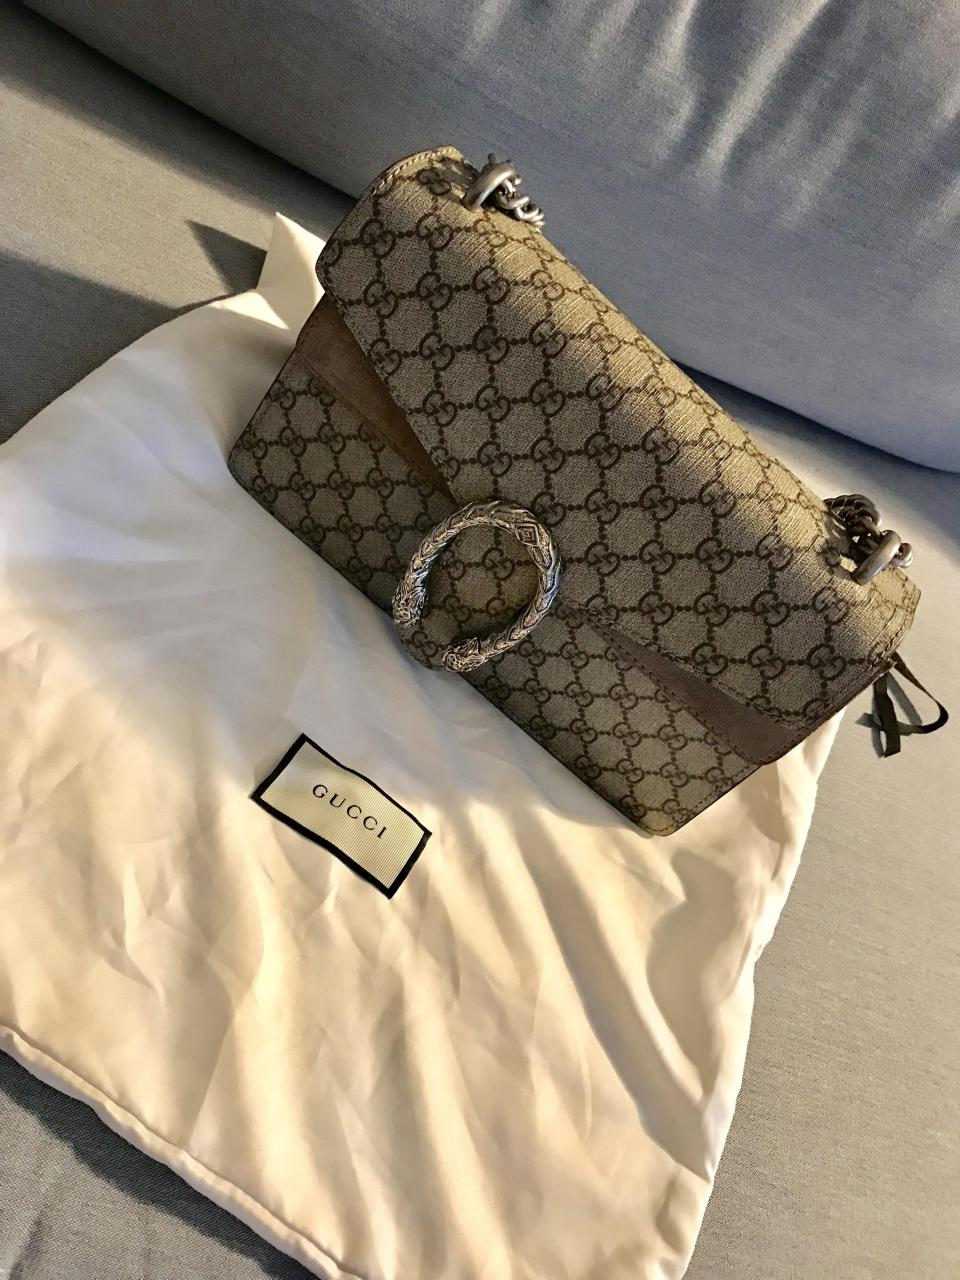 7d8eaa7ed8b681 The theme of animal detailing proceeds in the Gucci Soho Shoulder Bag Chain  Replica Osiride Small GG Shoulder Bag, which has as its focal point a  stunning, ...